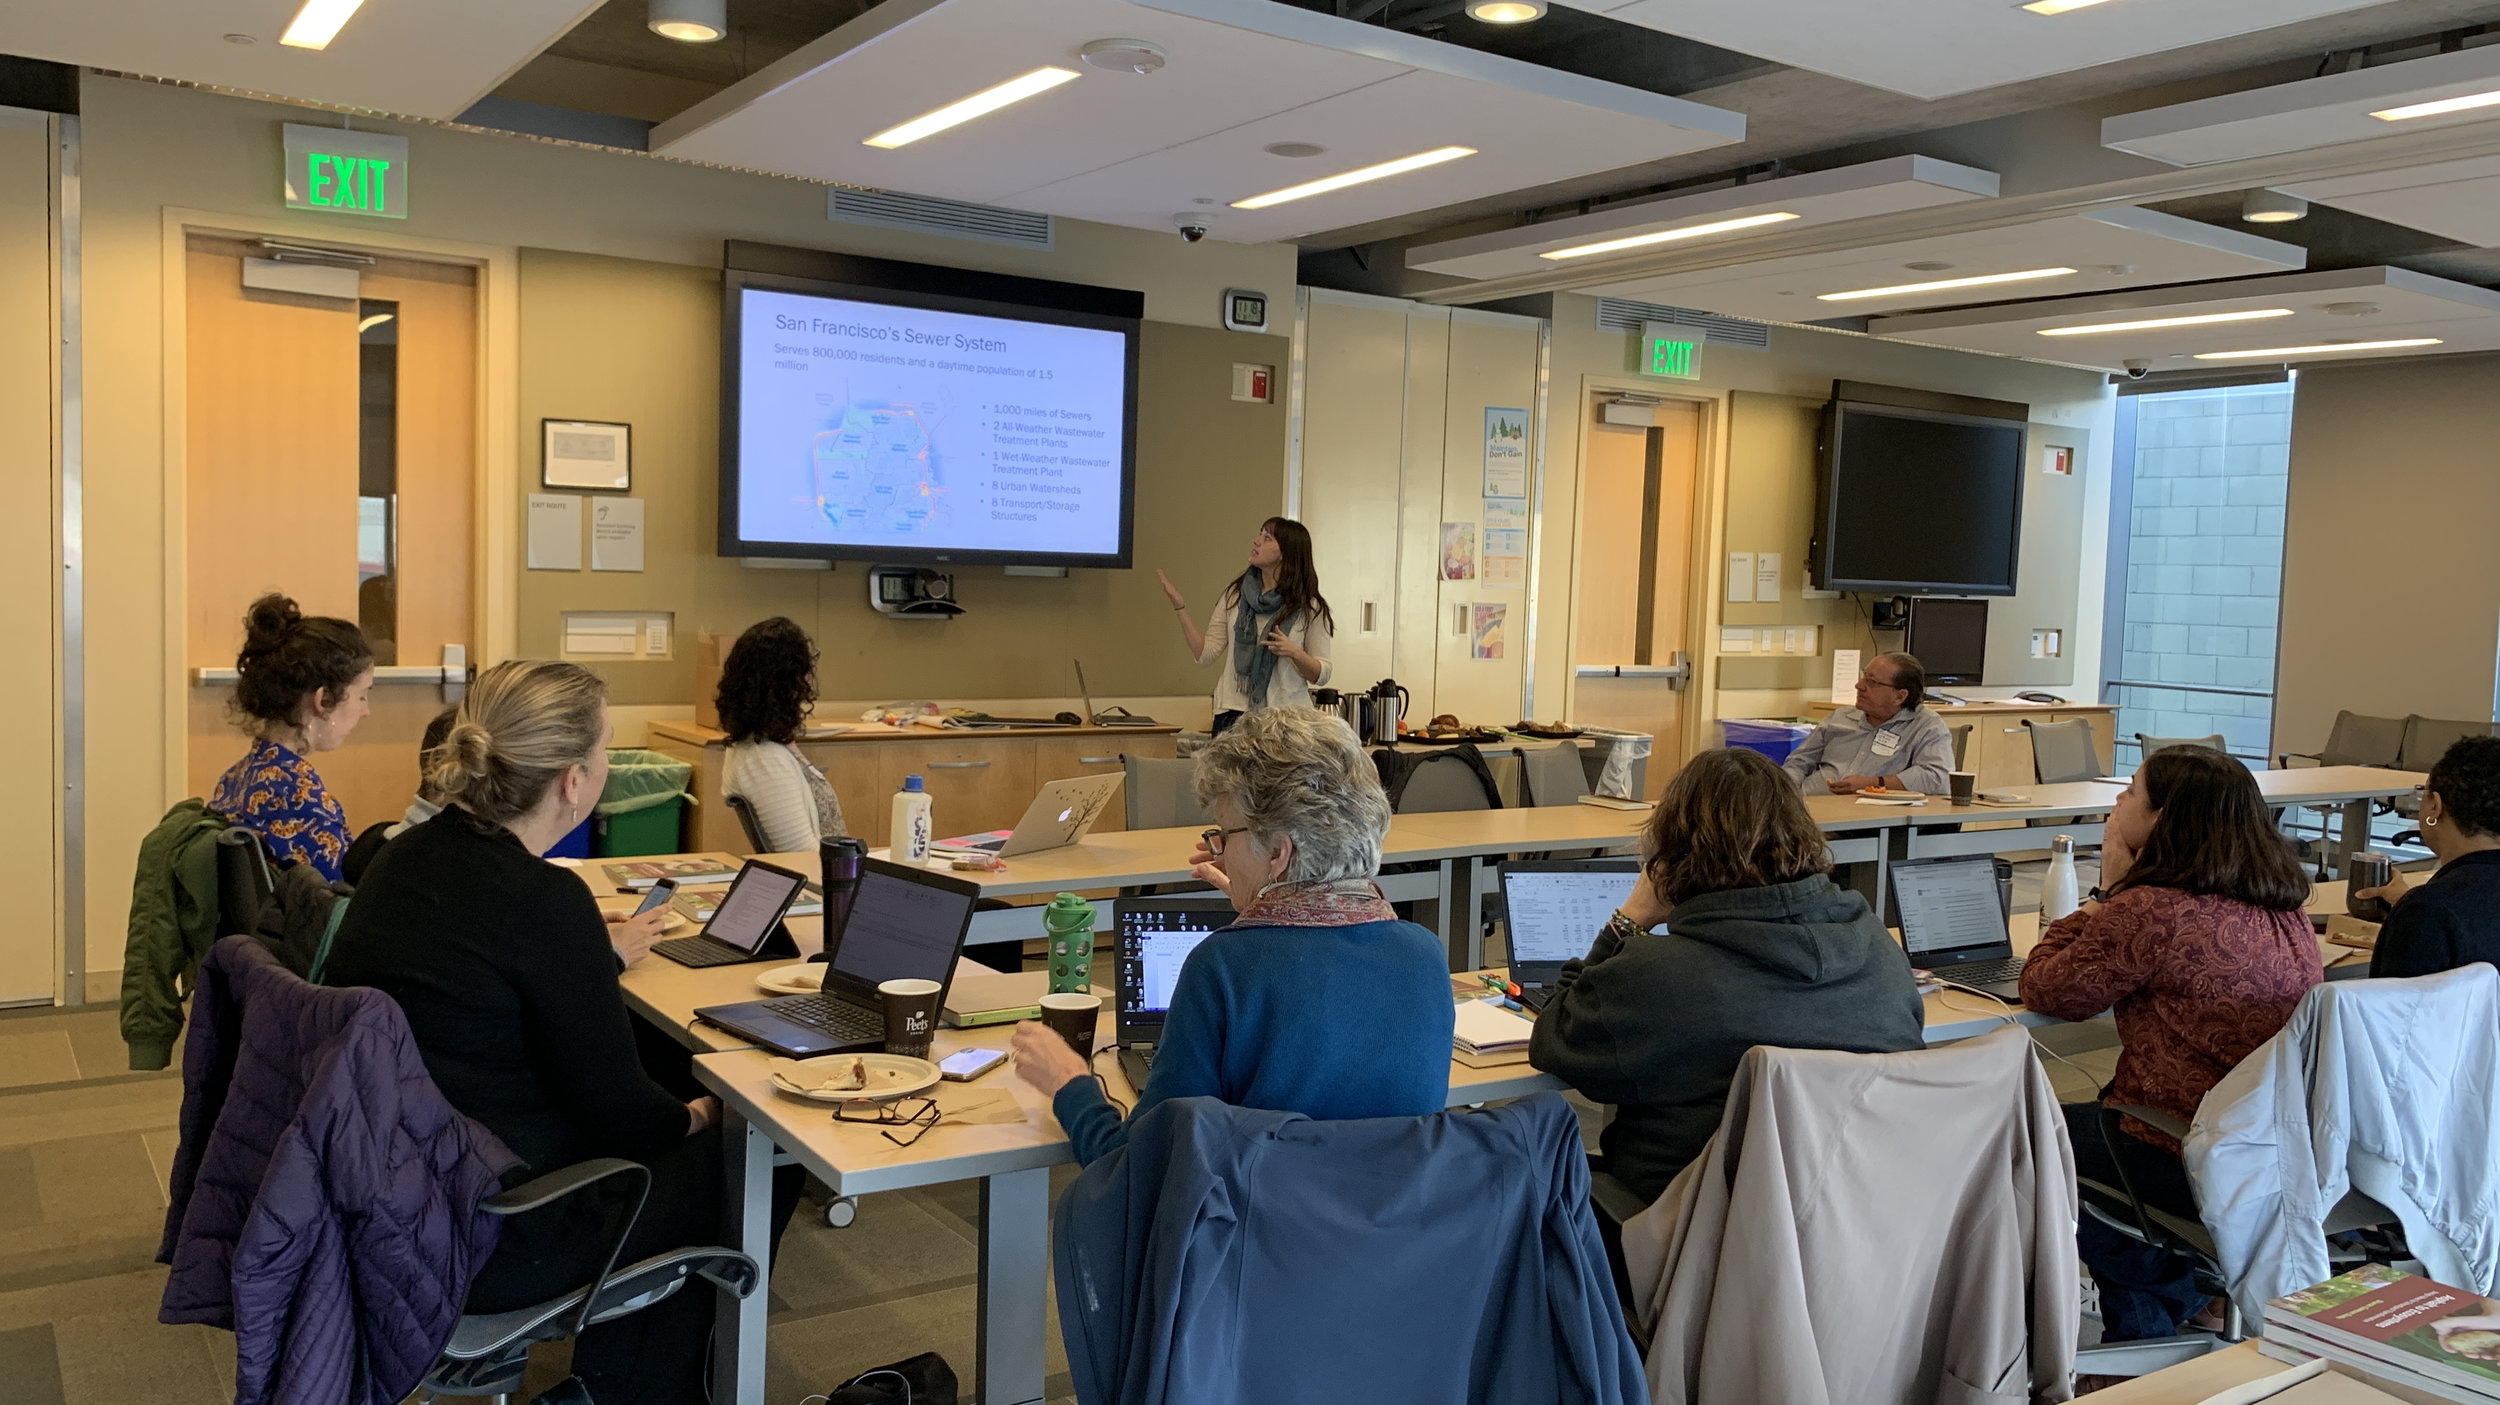 Sarah Bloom, a watershed planner with the San Francisco Public Utilities Commission, gave a presentation about stormwater schoolyards during the first Seminar of the 2019 Bay Area Principals' Institute.